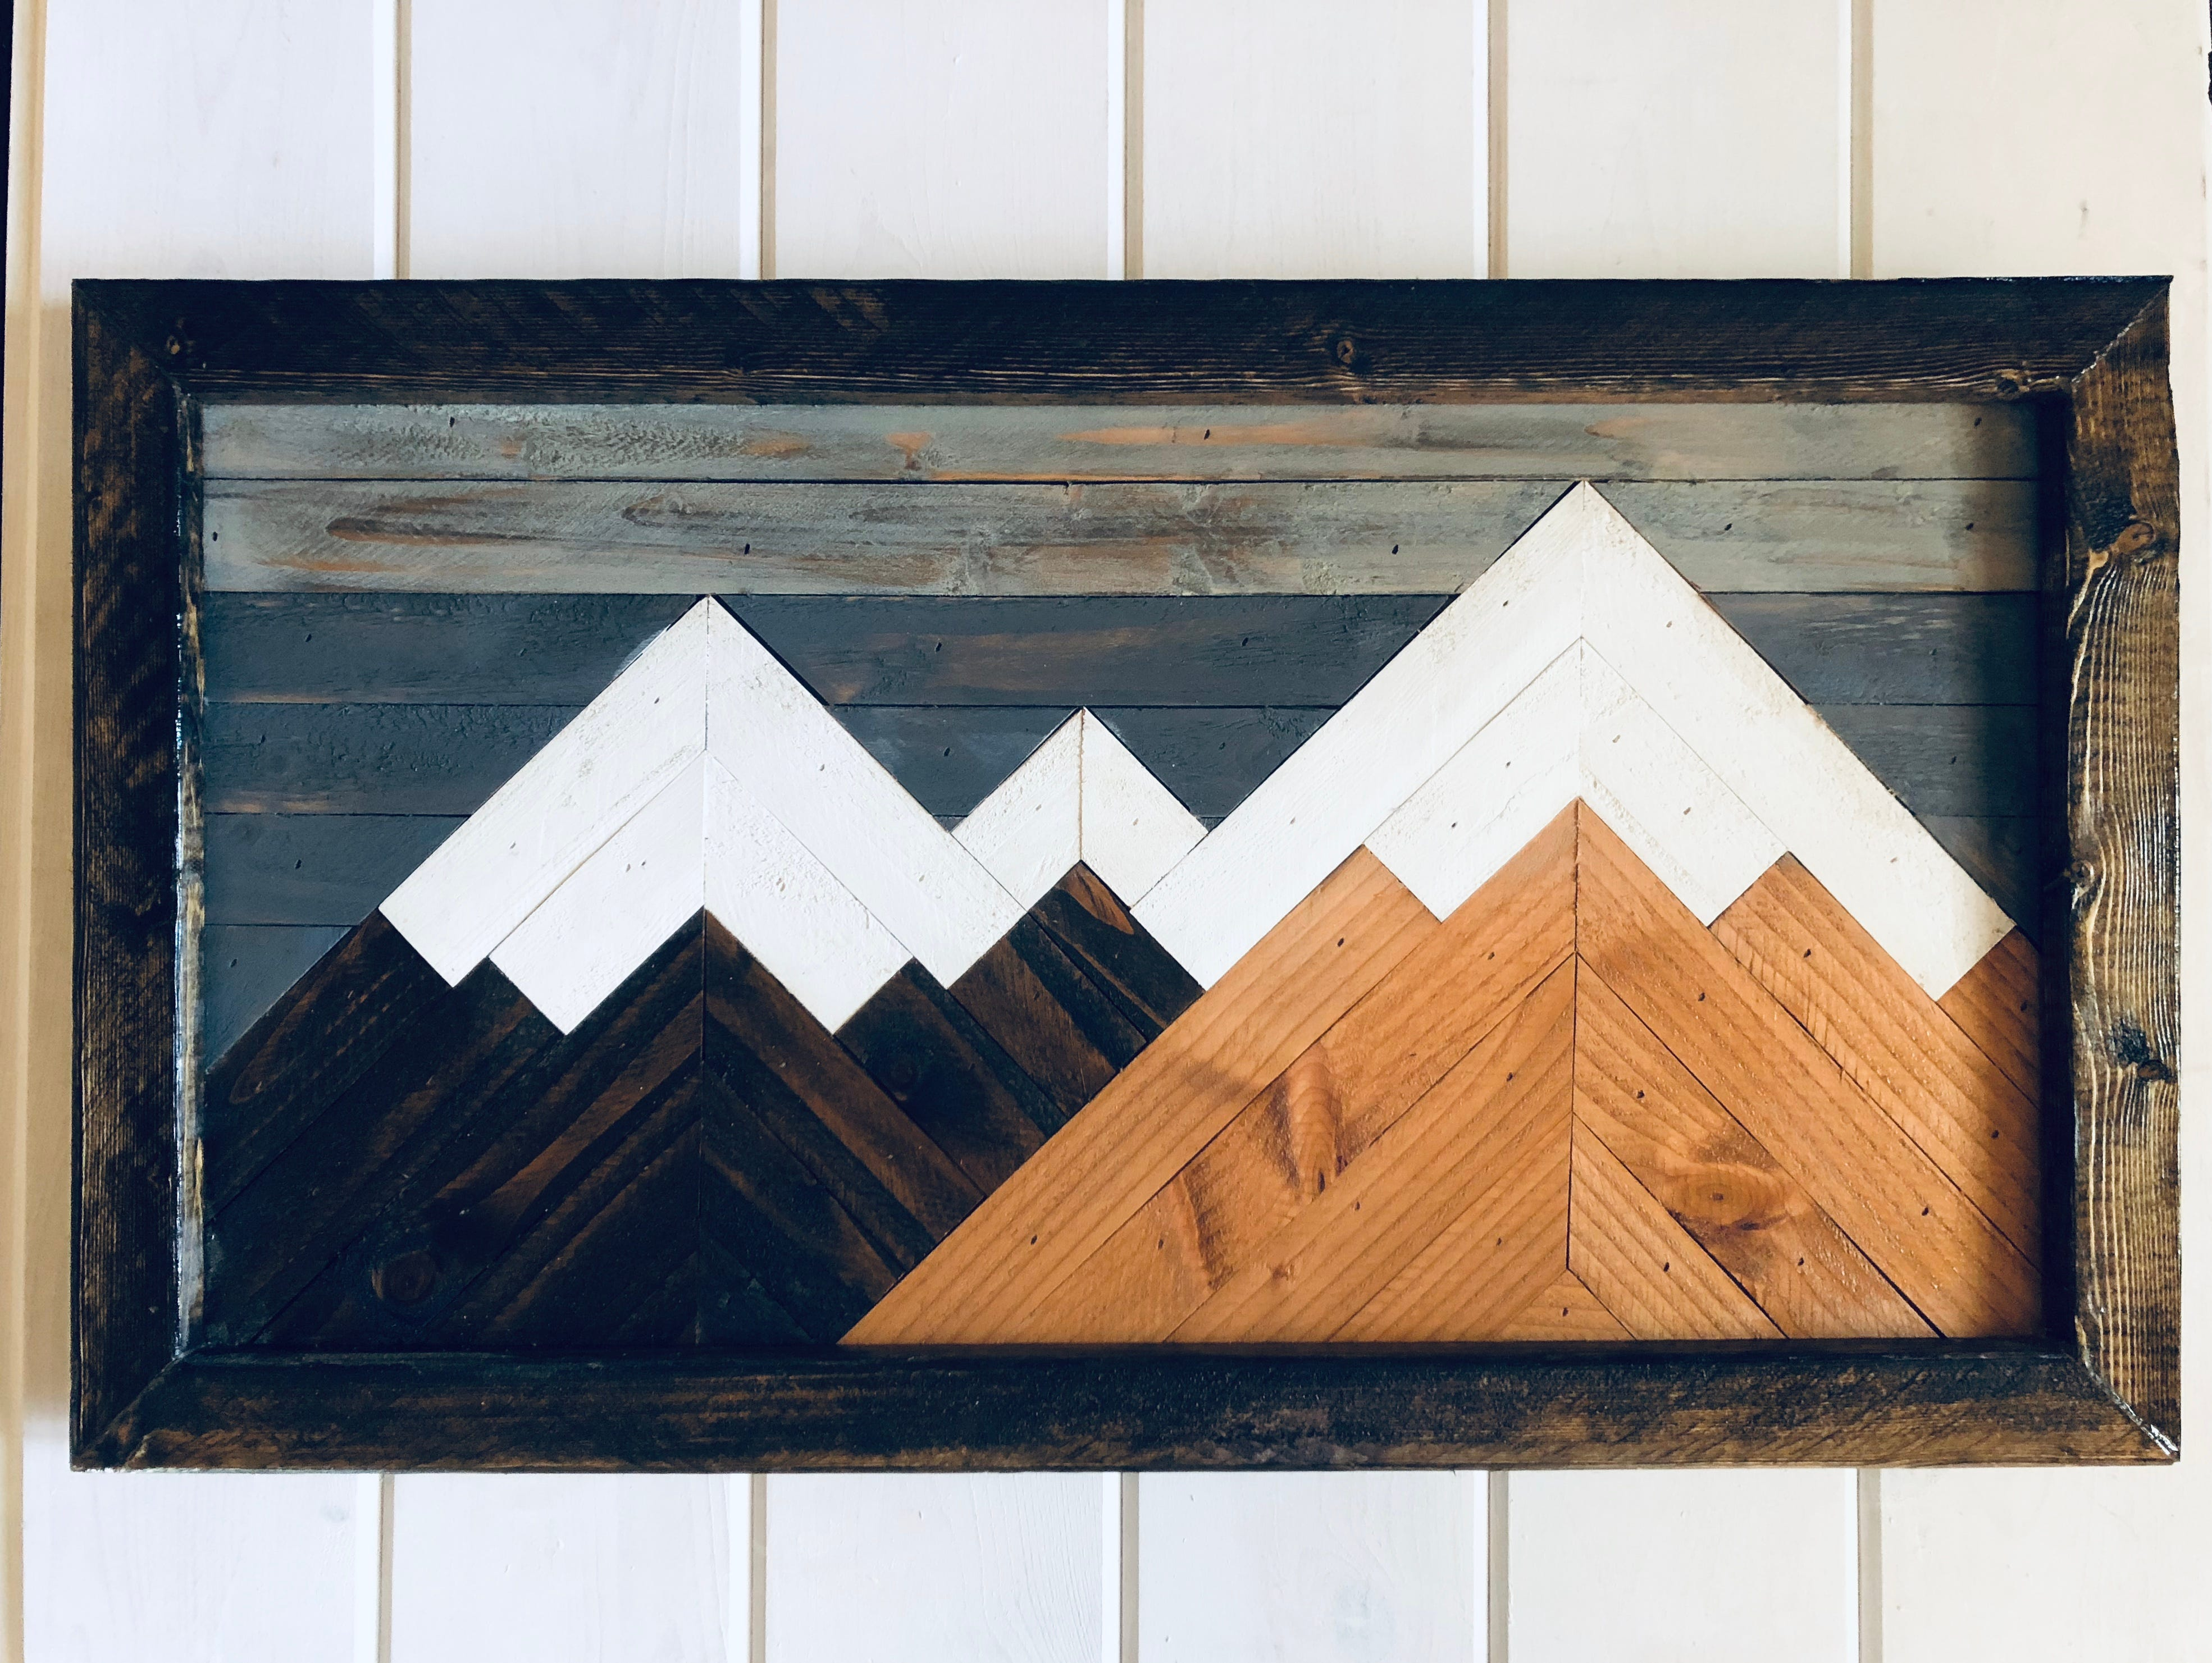 Native Range hardwood art is hand-made by craftsman Aaron Black from his north Springfield home. The mountain art piece pictured ($99) is one of several sizes and designs ranging from $49.99 up to $499.